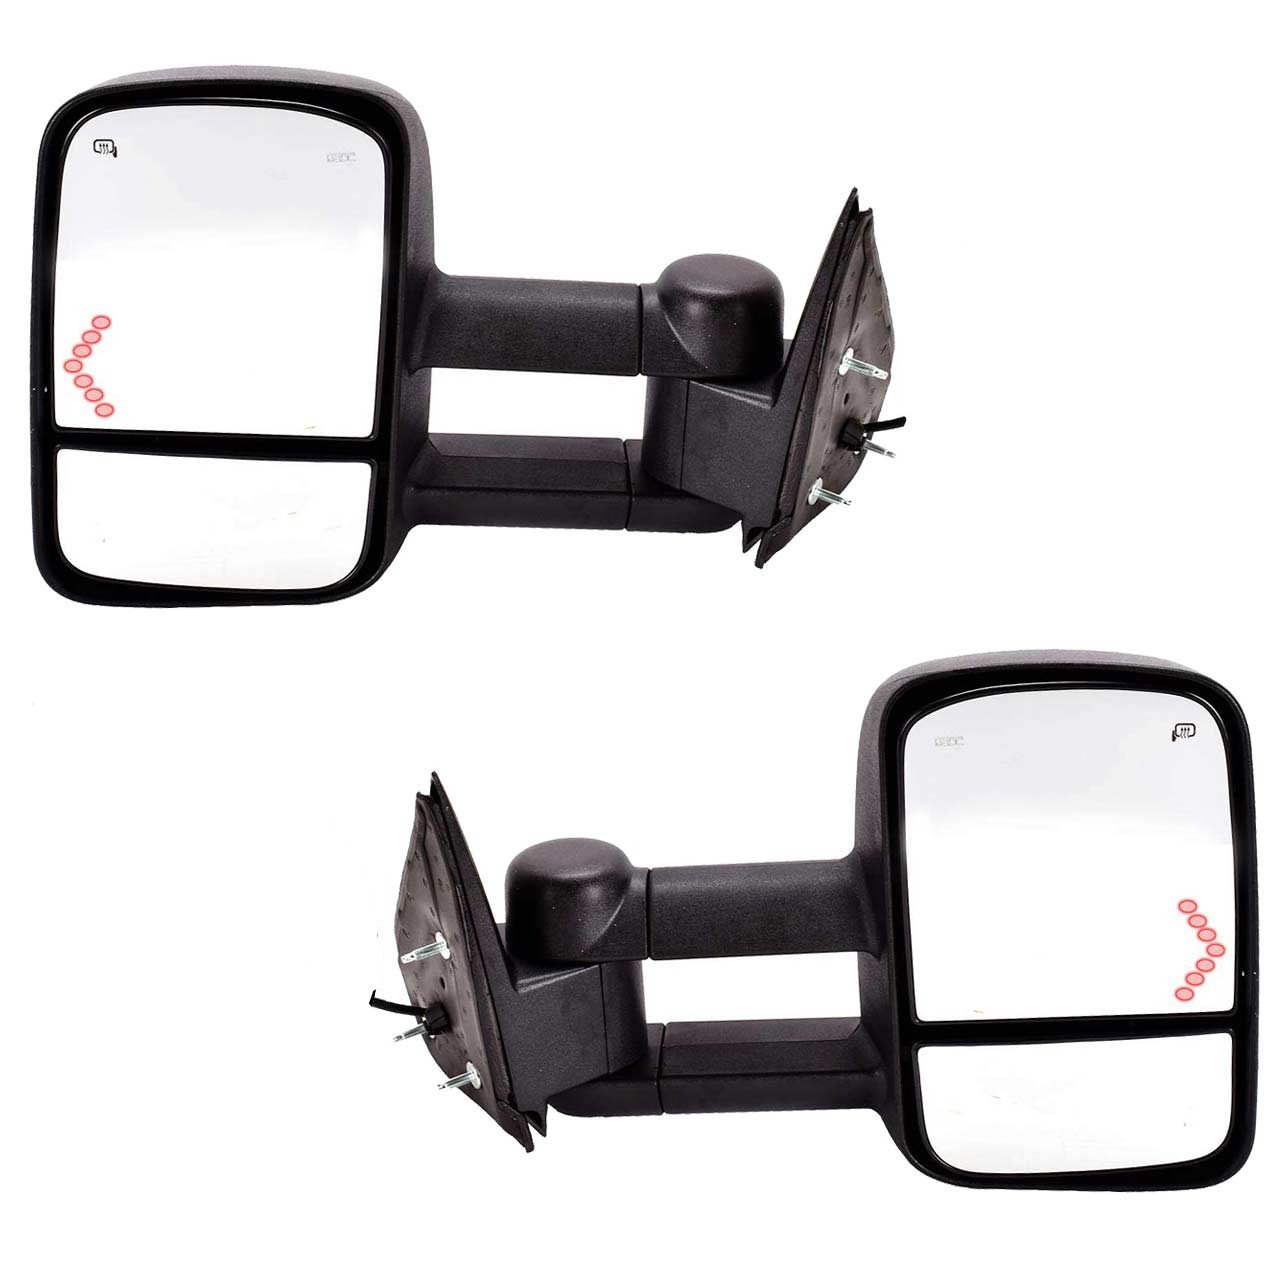 All Chevy chevy 1500 with tow mirrors : Amazon.com: DEDC Chevy Tow Mirrors Side Mirrors Towing Mirrors ...